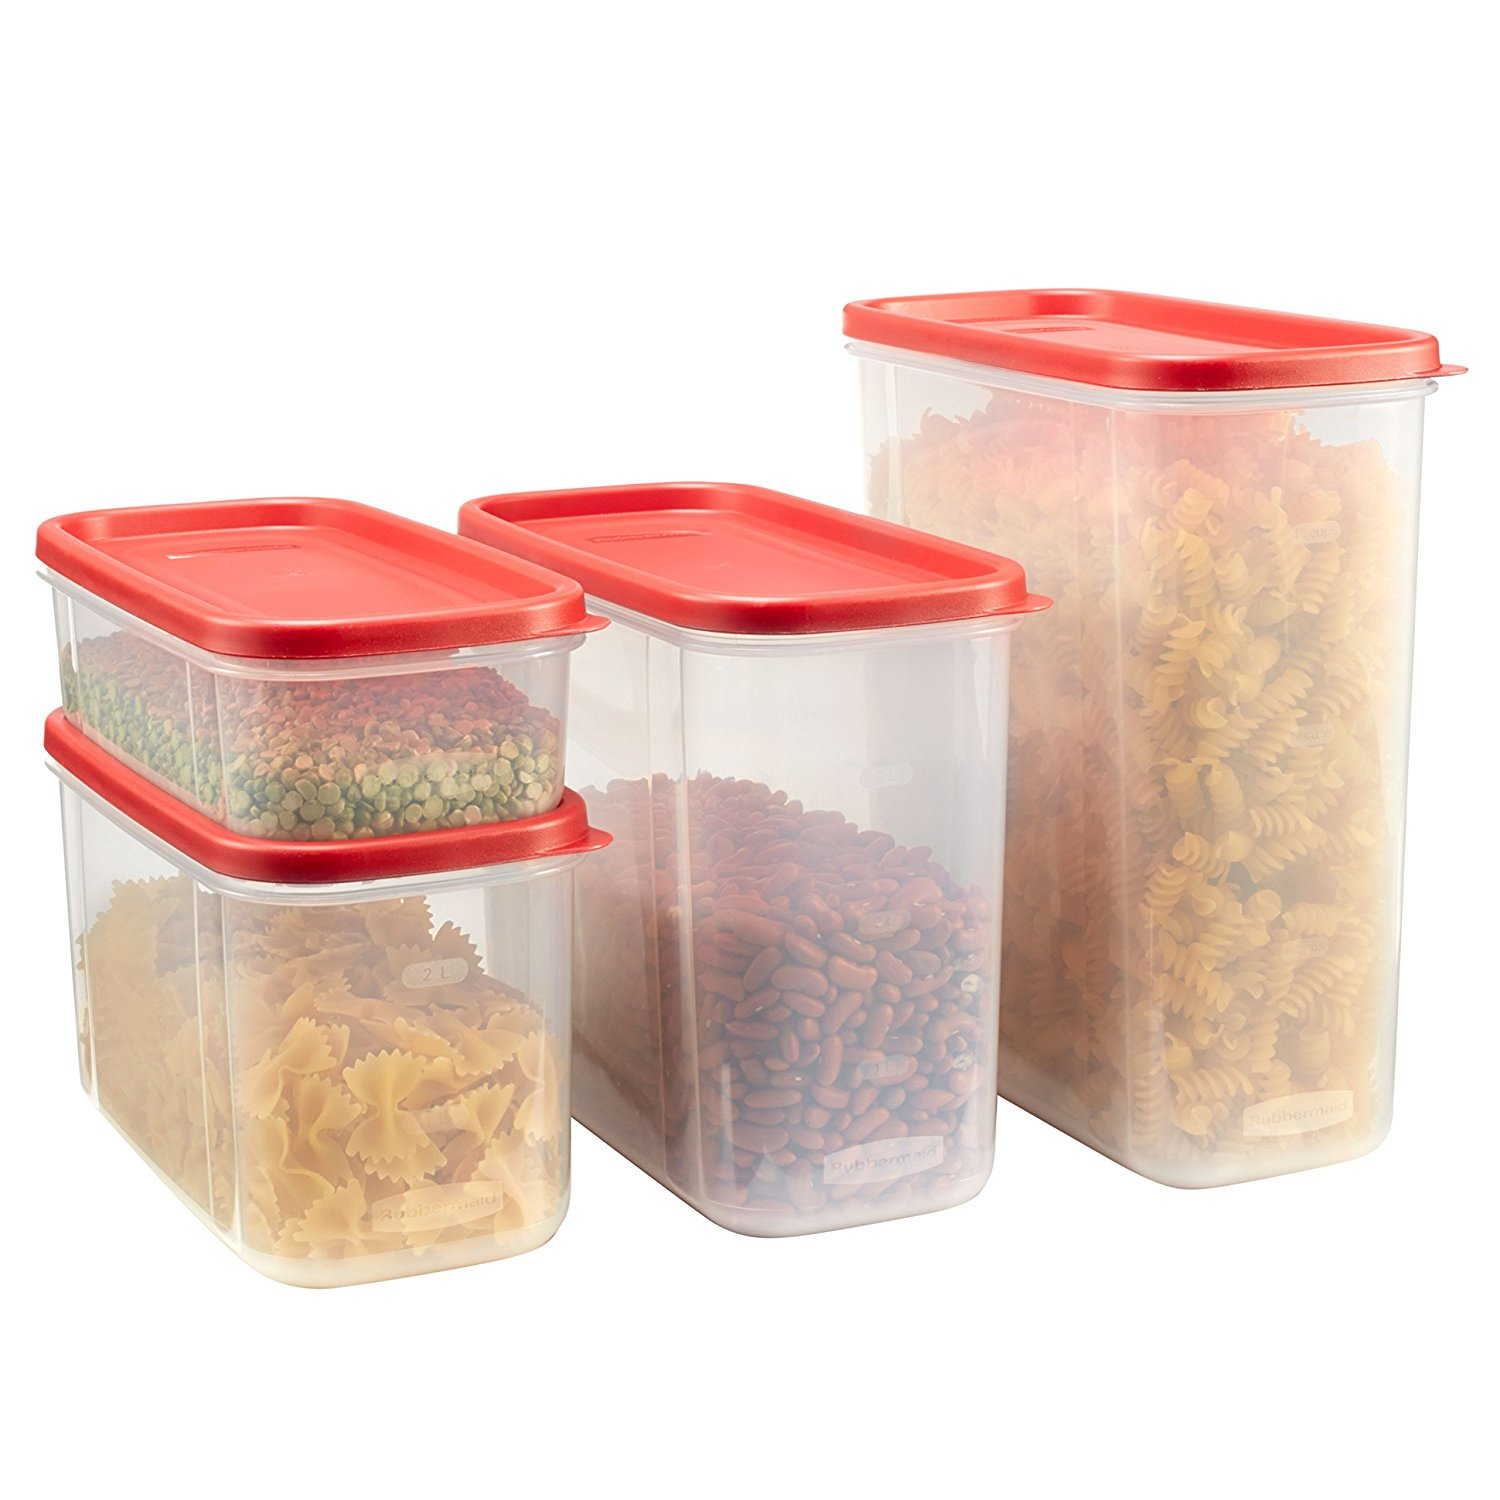 Walmart / Amazon Rubbermaid Modular Canisters Food Storage Container BPA-free 8-piece Set only $16.97 (Was $23)!  sc 1 st  Dealing in Deals! & Walmart / Amazon: Rubbermaid Modular Canisters Food Storage ...